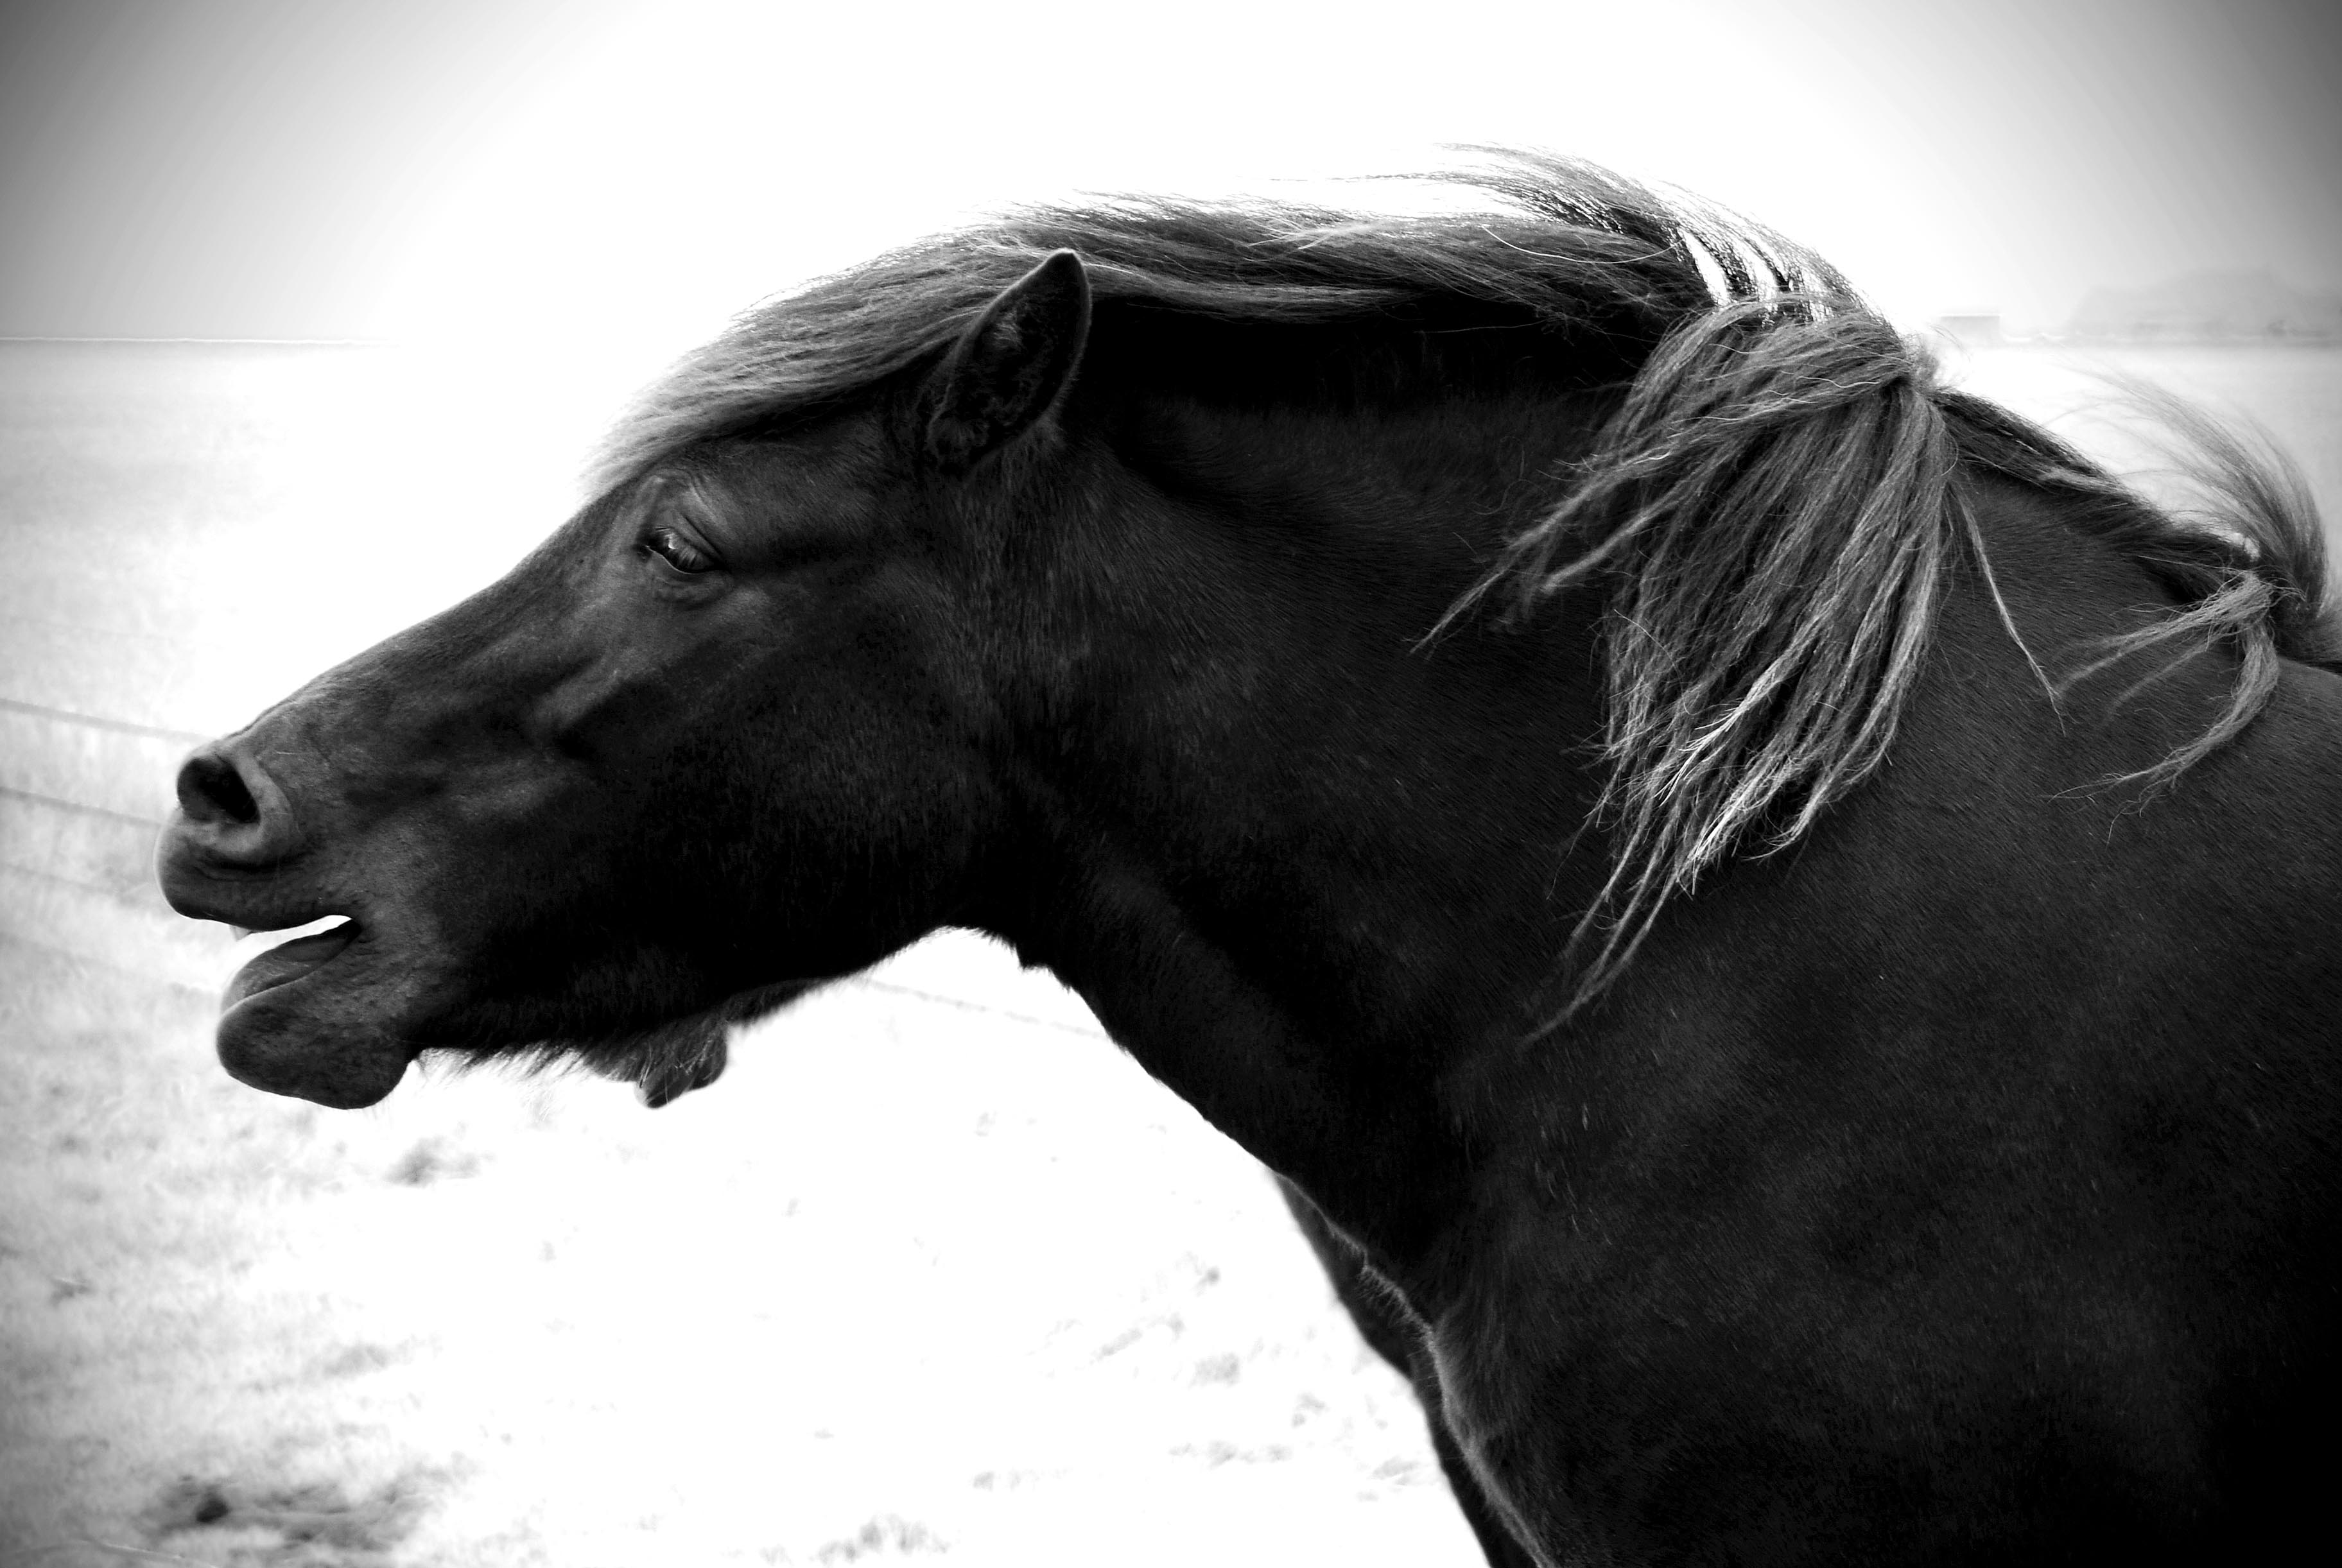 Icelandic Horse Black smaller Iceland Culture|The Icelandic Horse